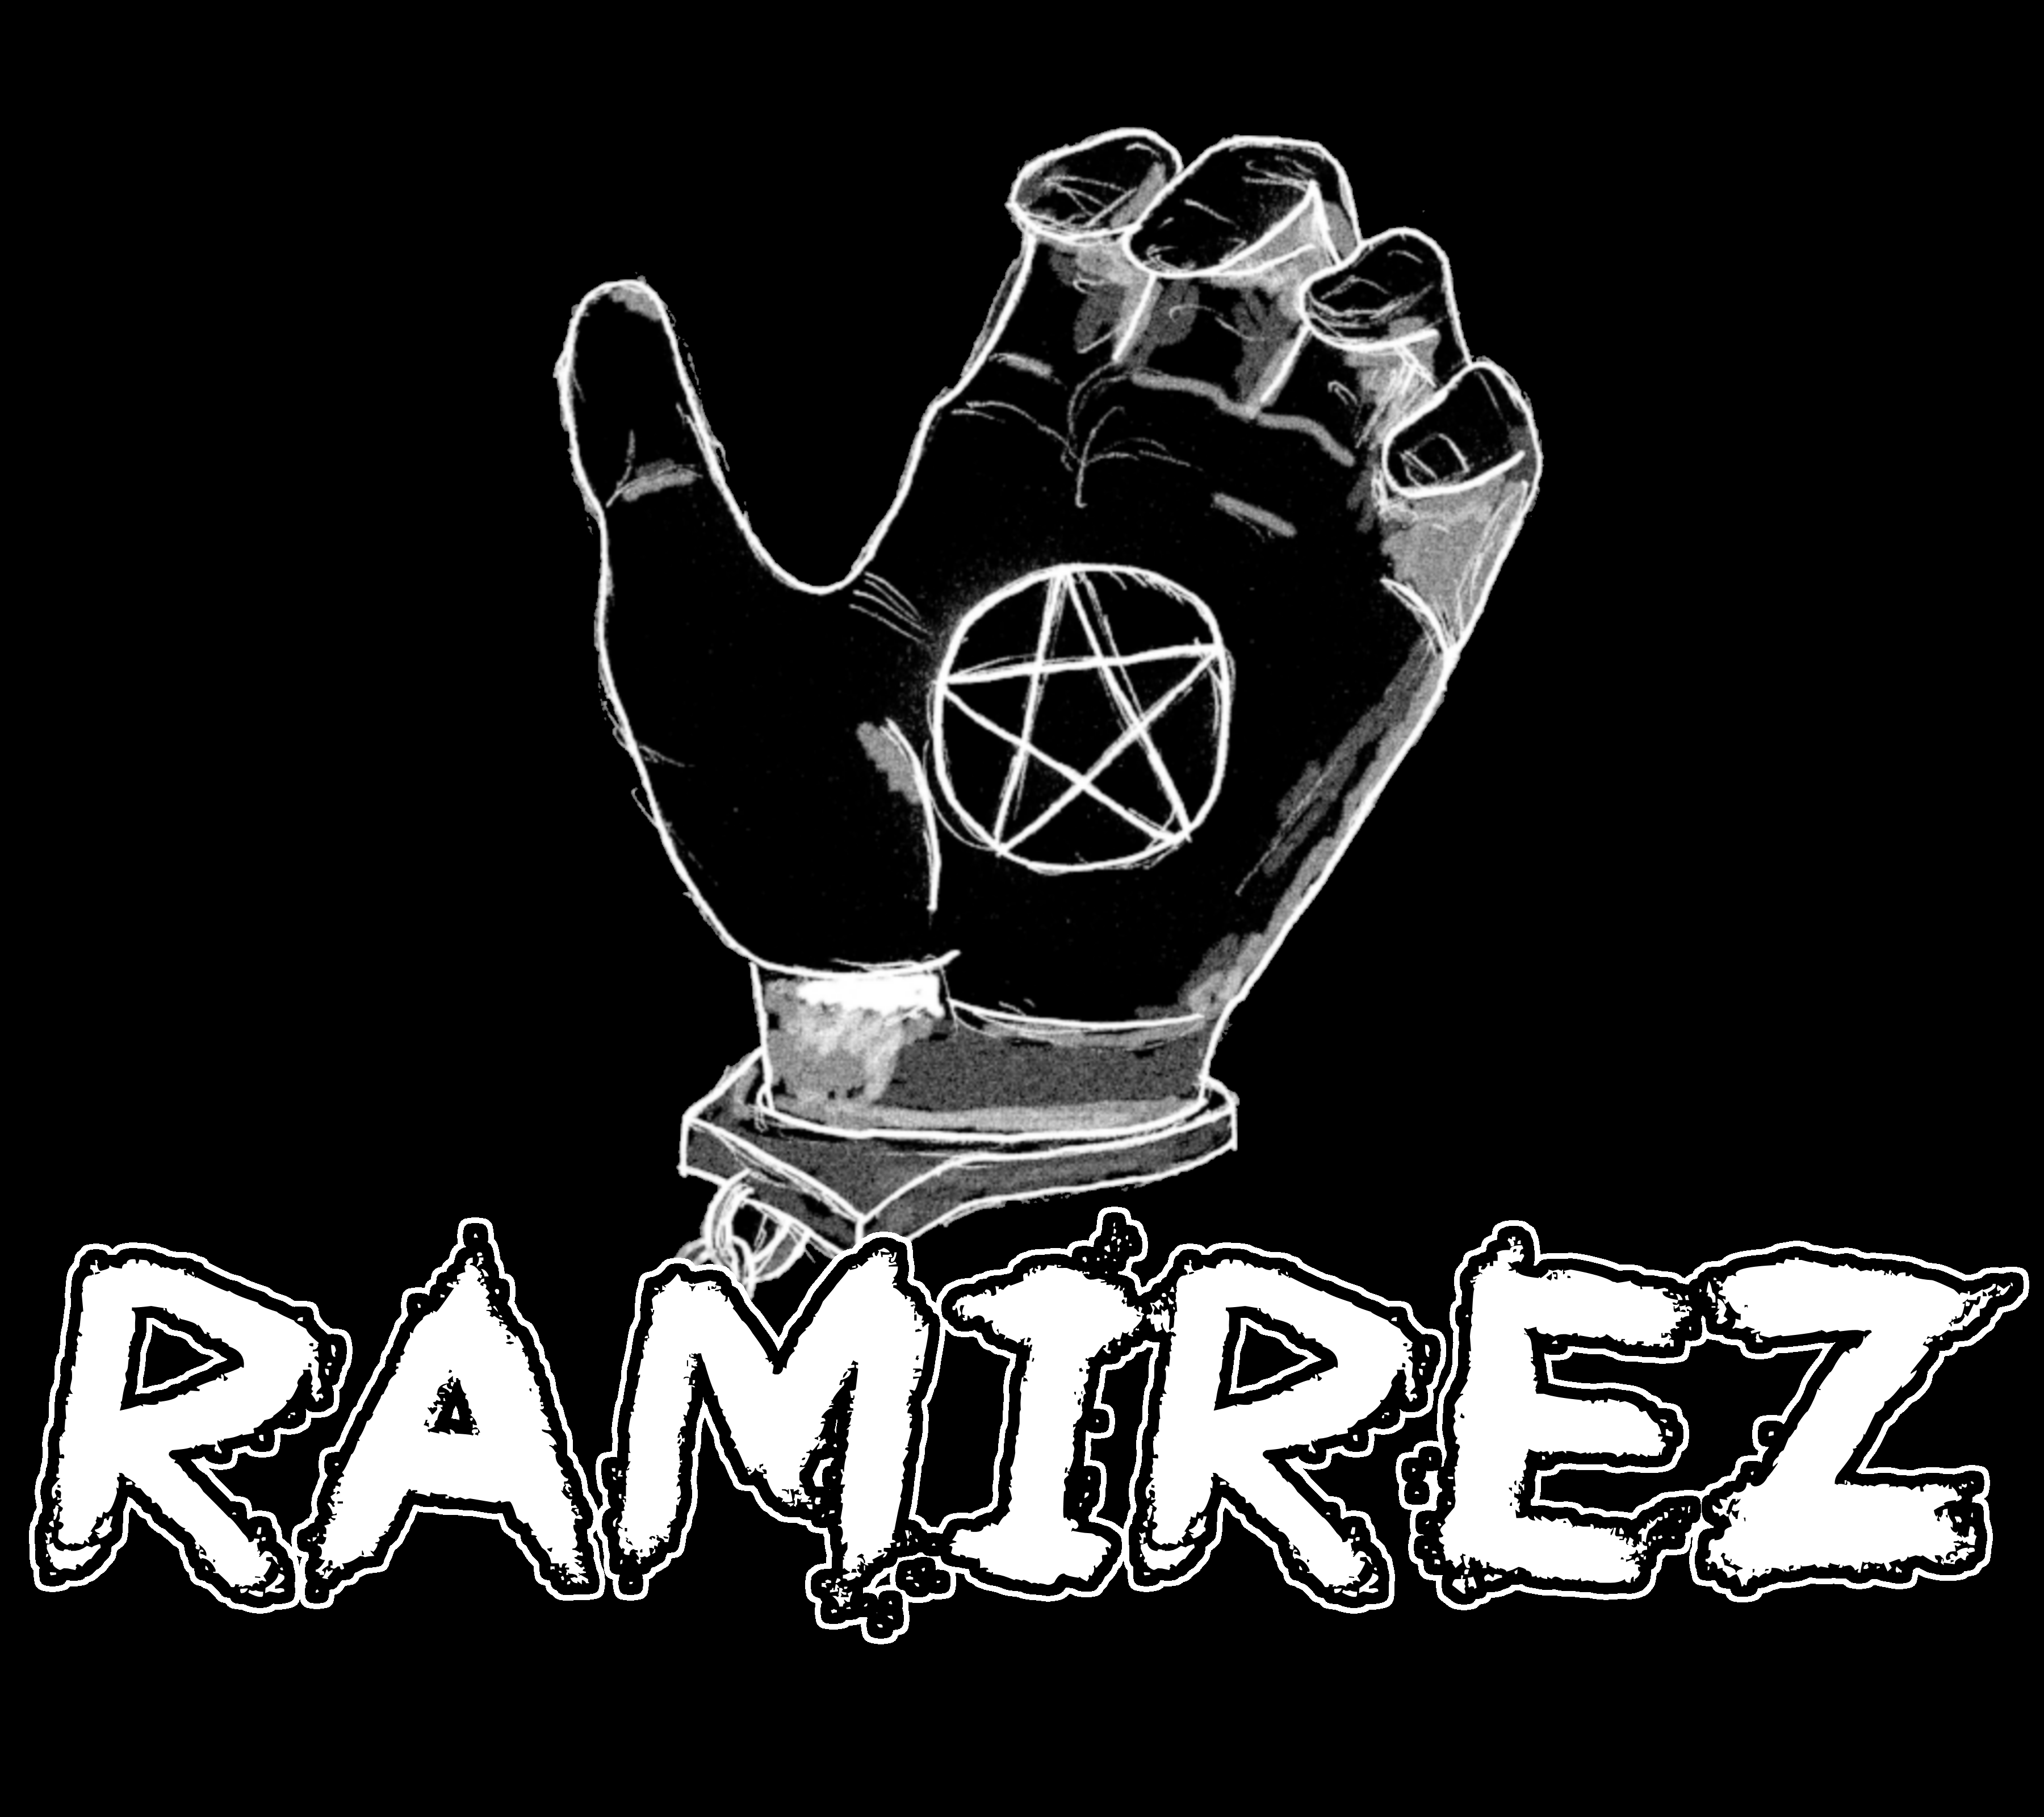 Richard Ramirez Pentagram Night Stalker shirt